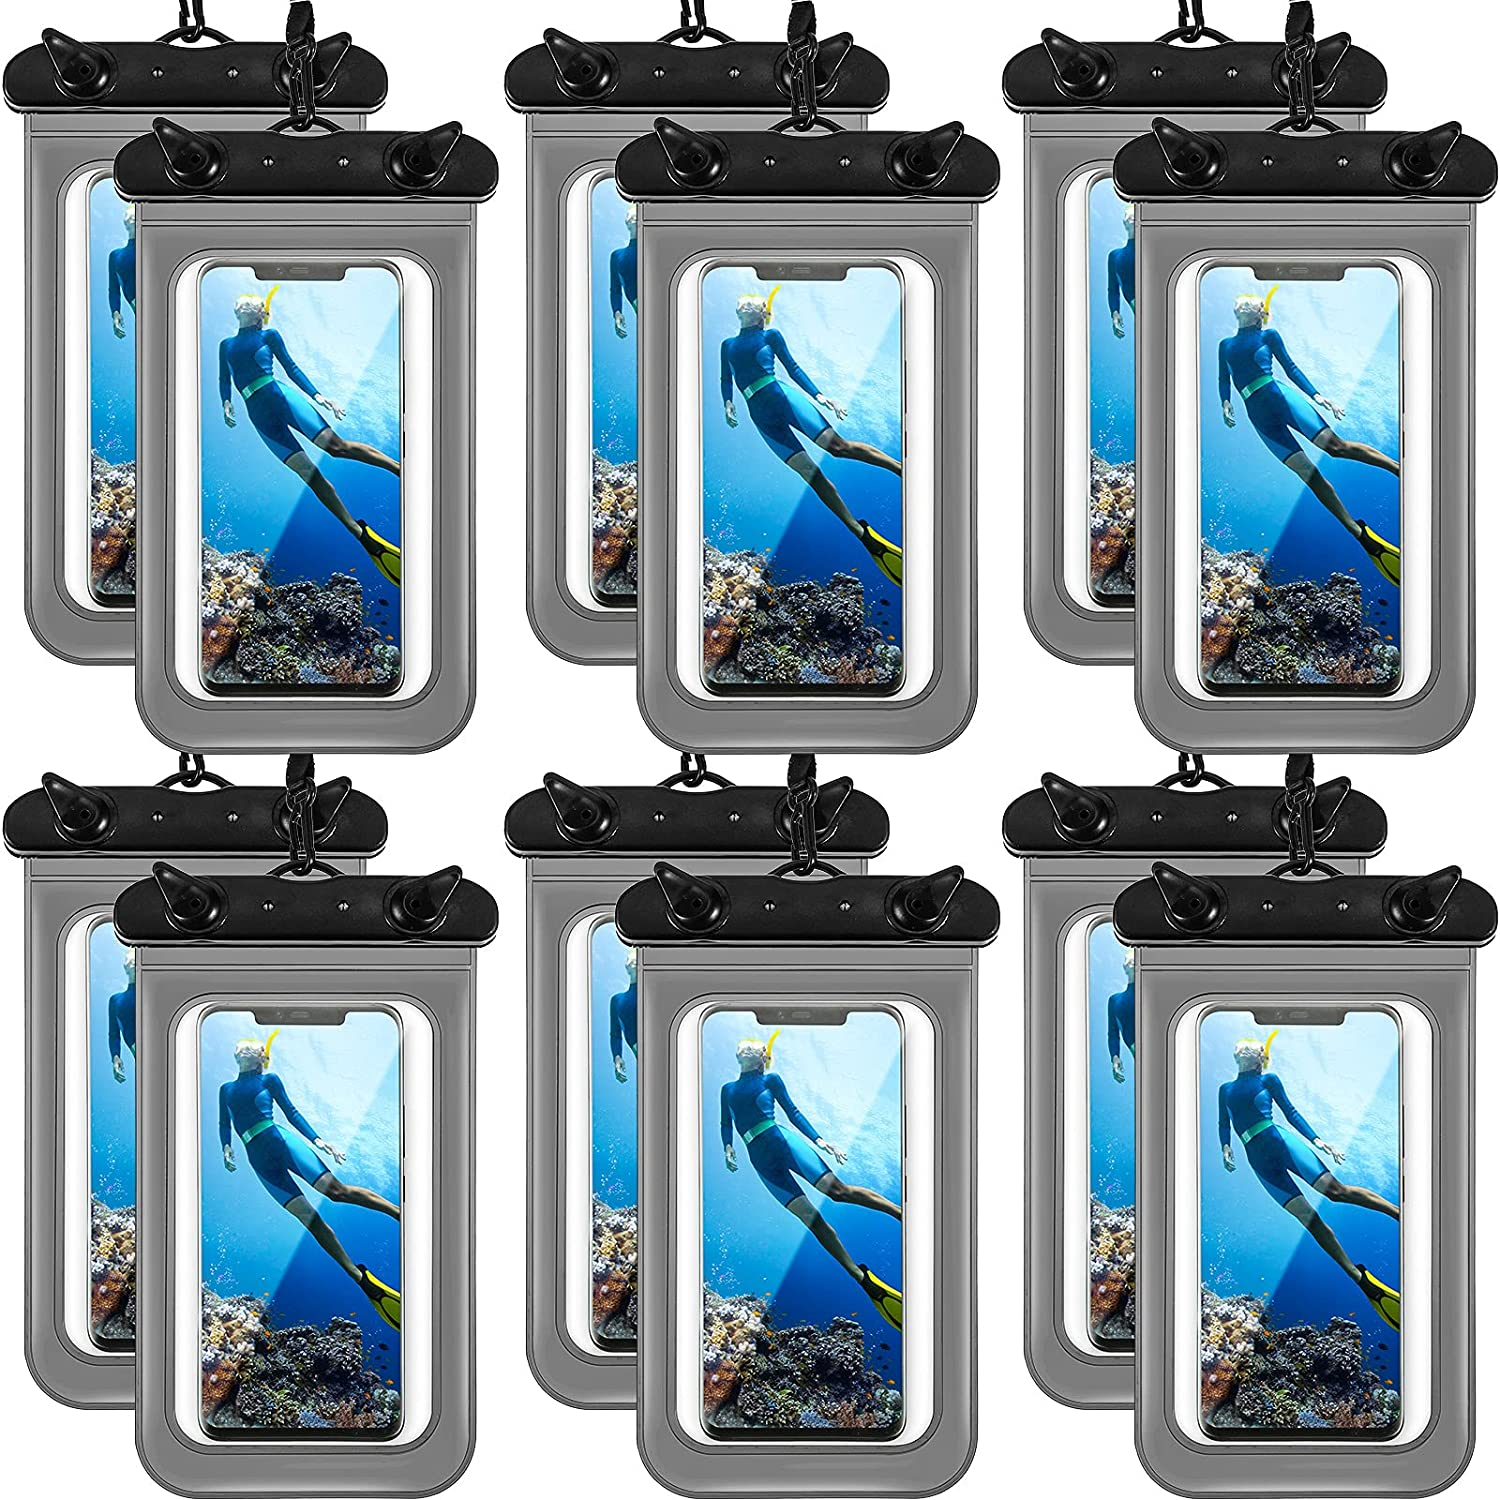 12 Pieces Waterproof Phone Pouch Transparent Waterproof Mobile Phone Case with Lanyard Universal PVC Phone Bag Dry Bag for Outdoor Water Sports Boating Hiking Fishing Swimming (Black)